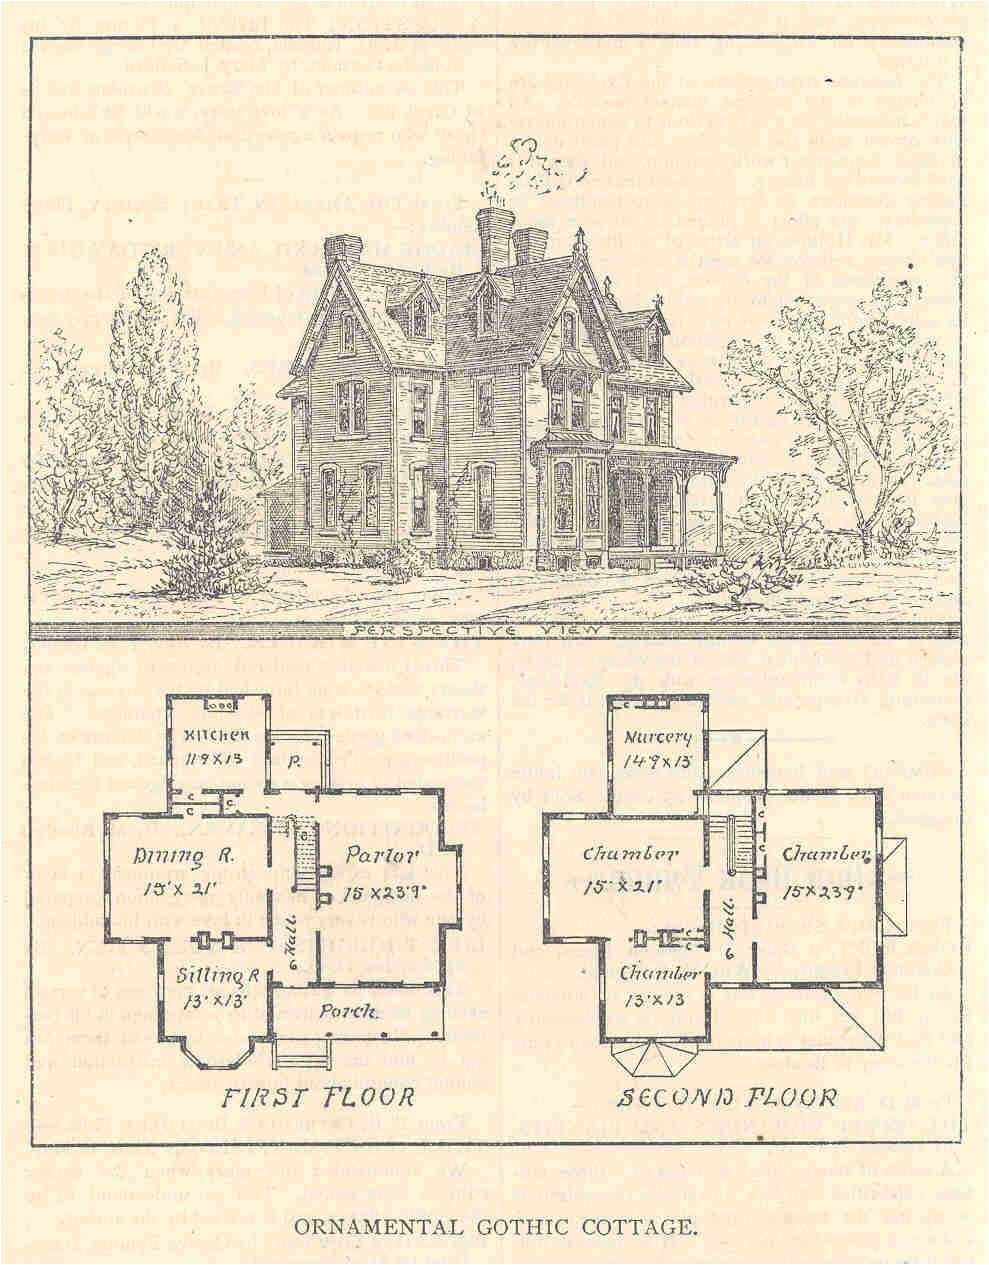 Gothic Home Plans Gothic House Plans with Turrets the Sims 4 Floorplans